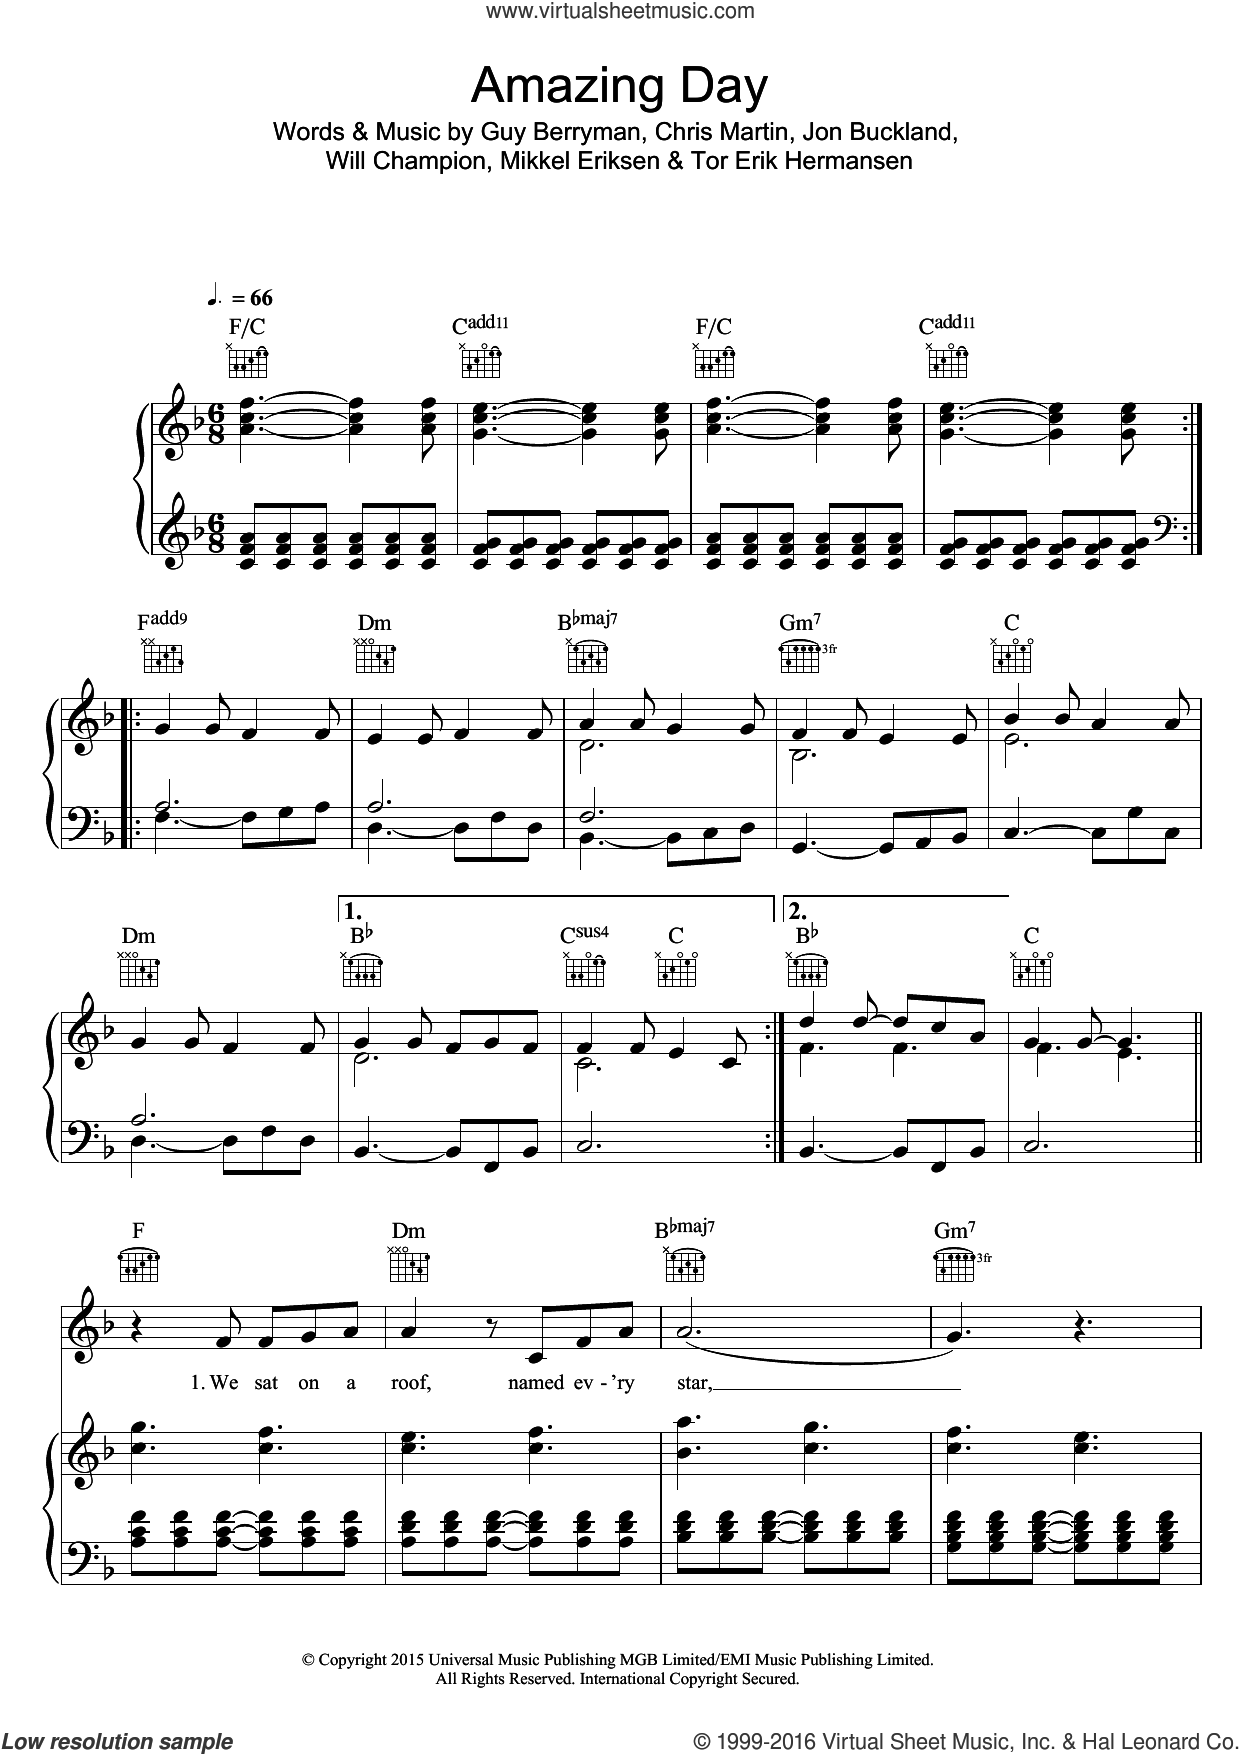 Amazing Day sheet music for voice, piano or guitar by Will Champion, Coldplay, Chris Martin, Guy Berryman, Jon Buckland, Mikkel Eriksen and Tor Erik Hermansen. Score Image Preview.